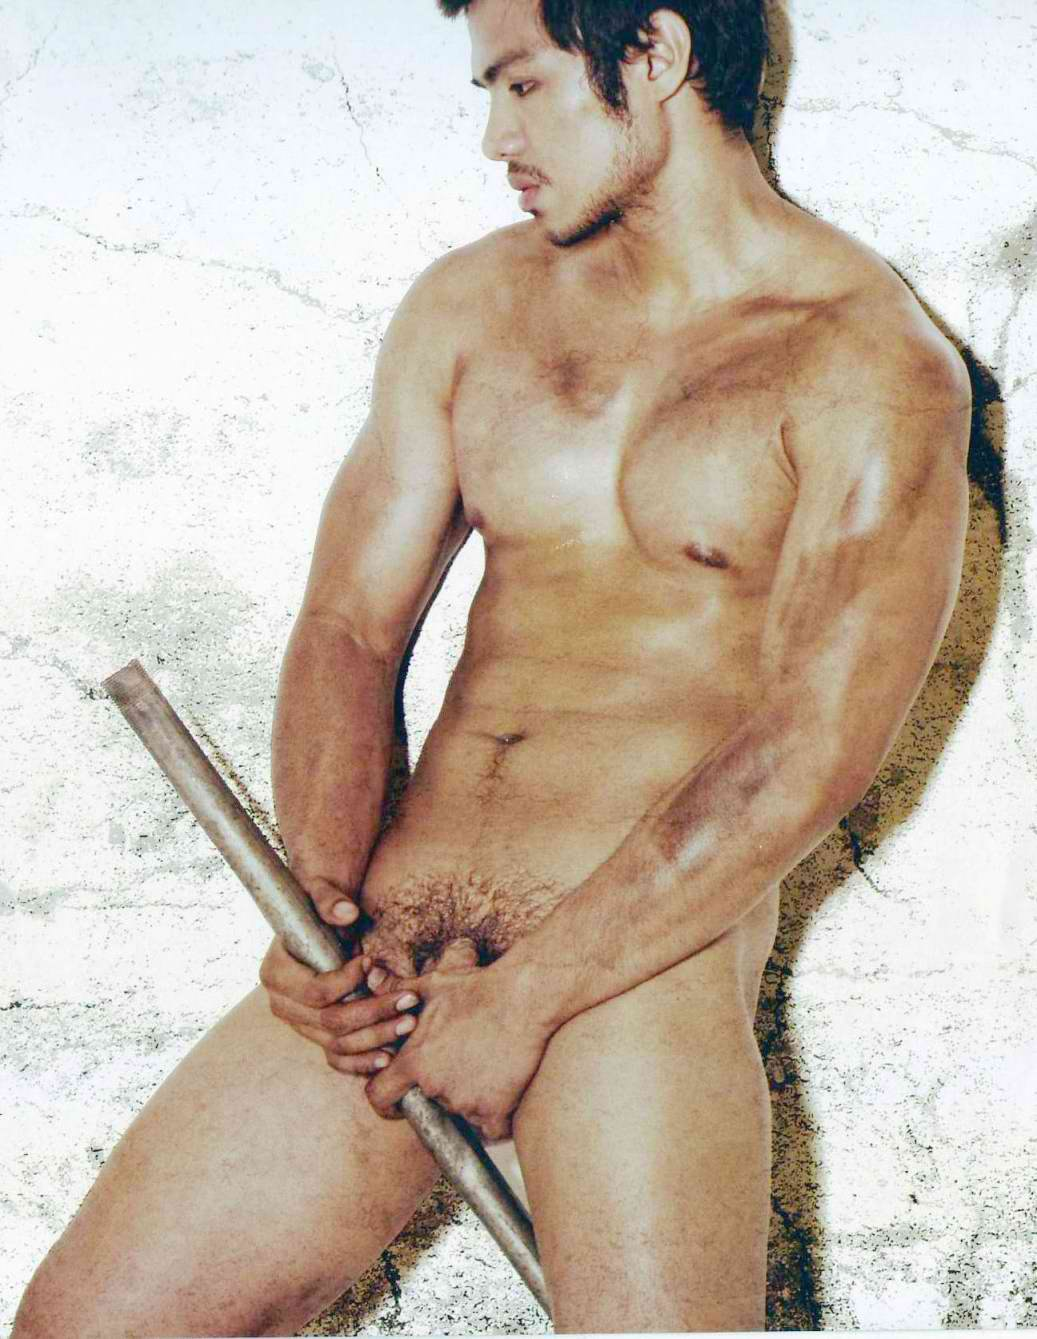 real hot filipino male naked